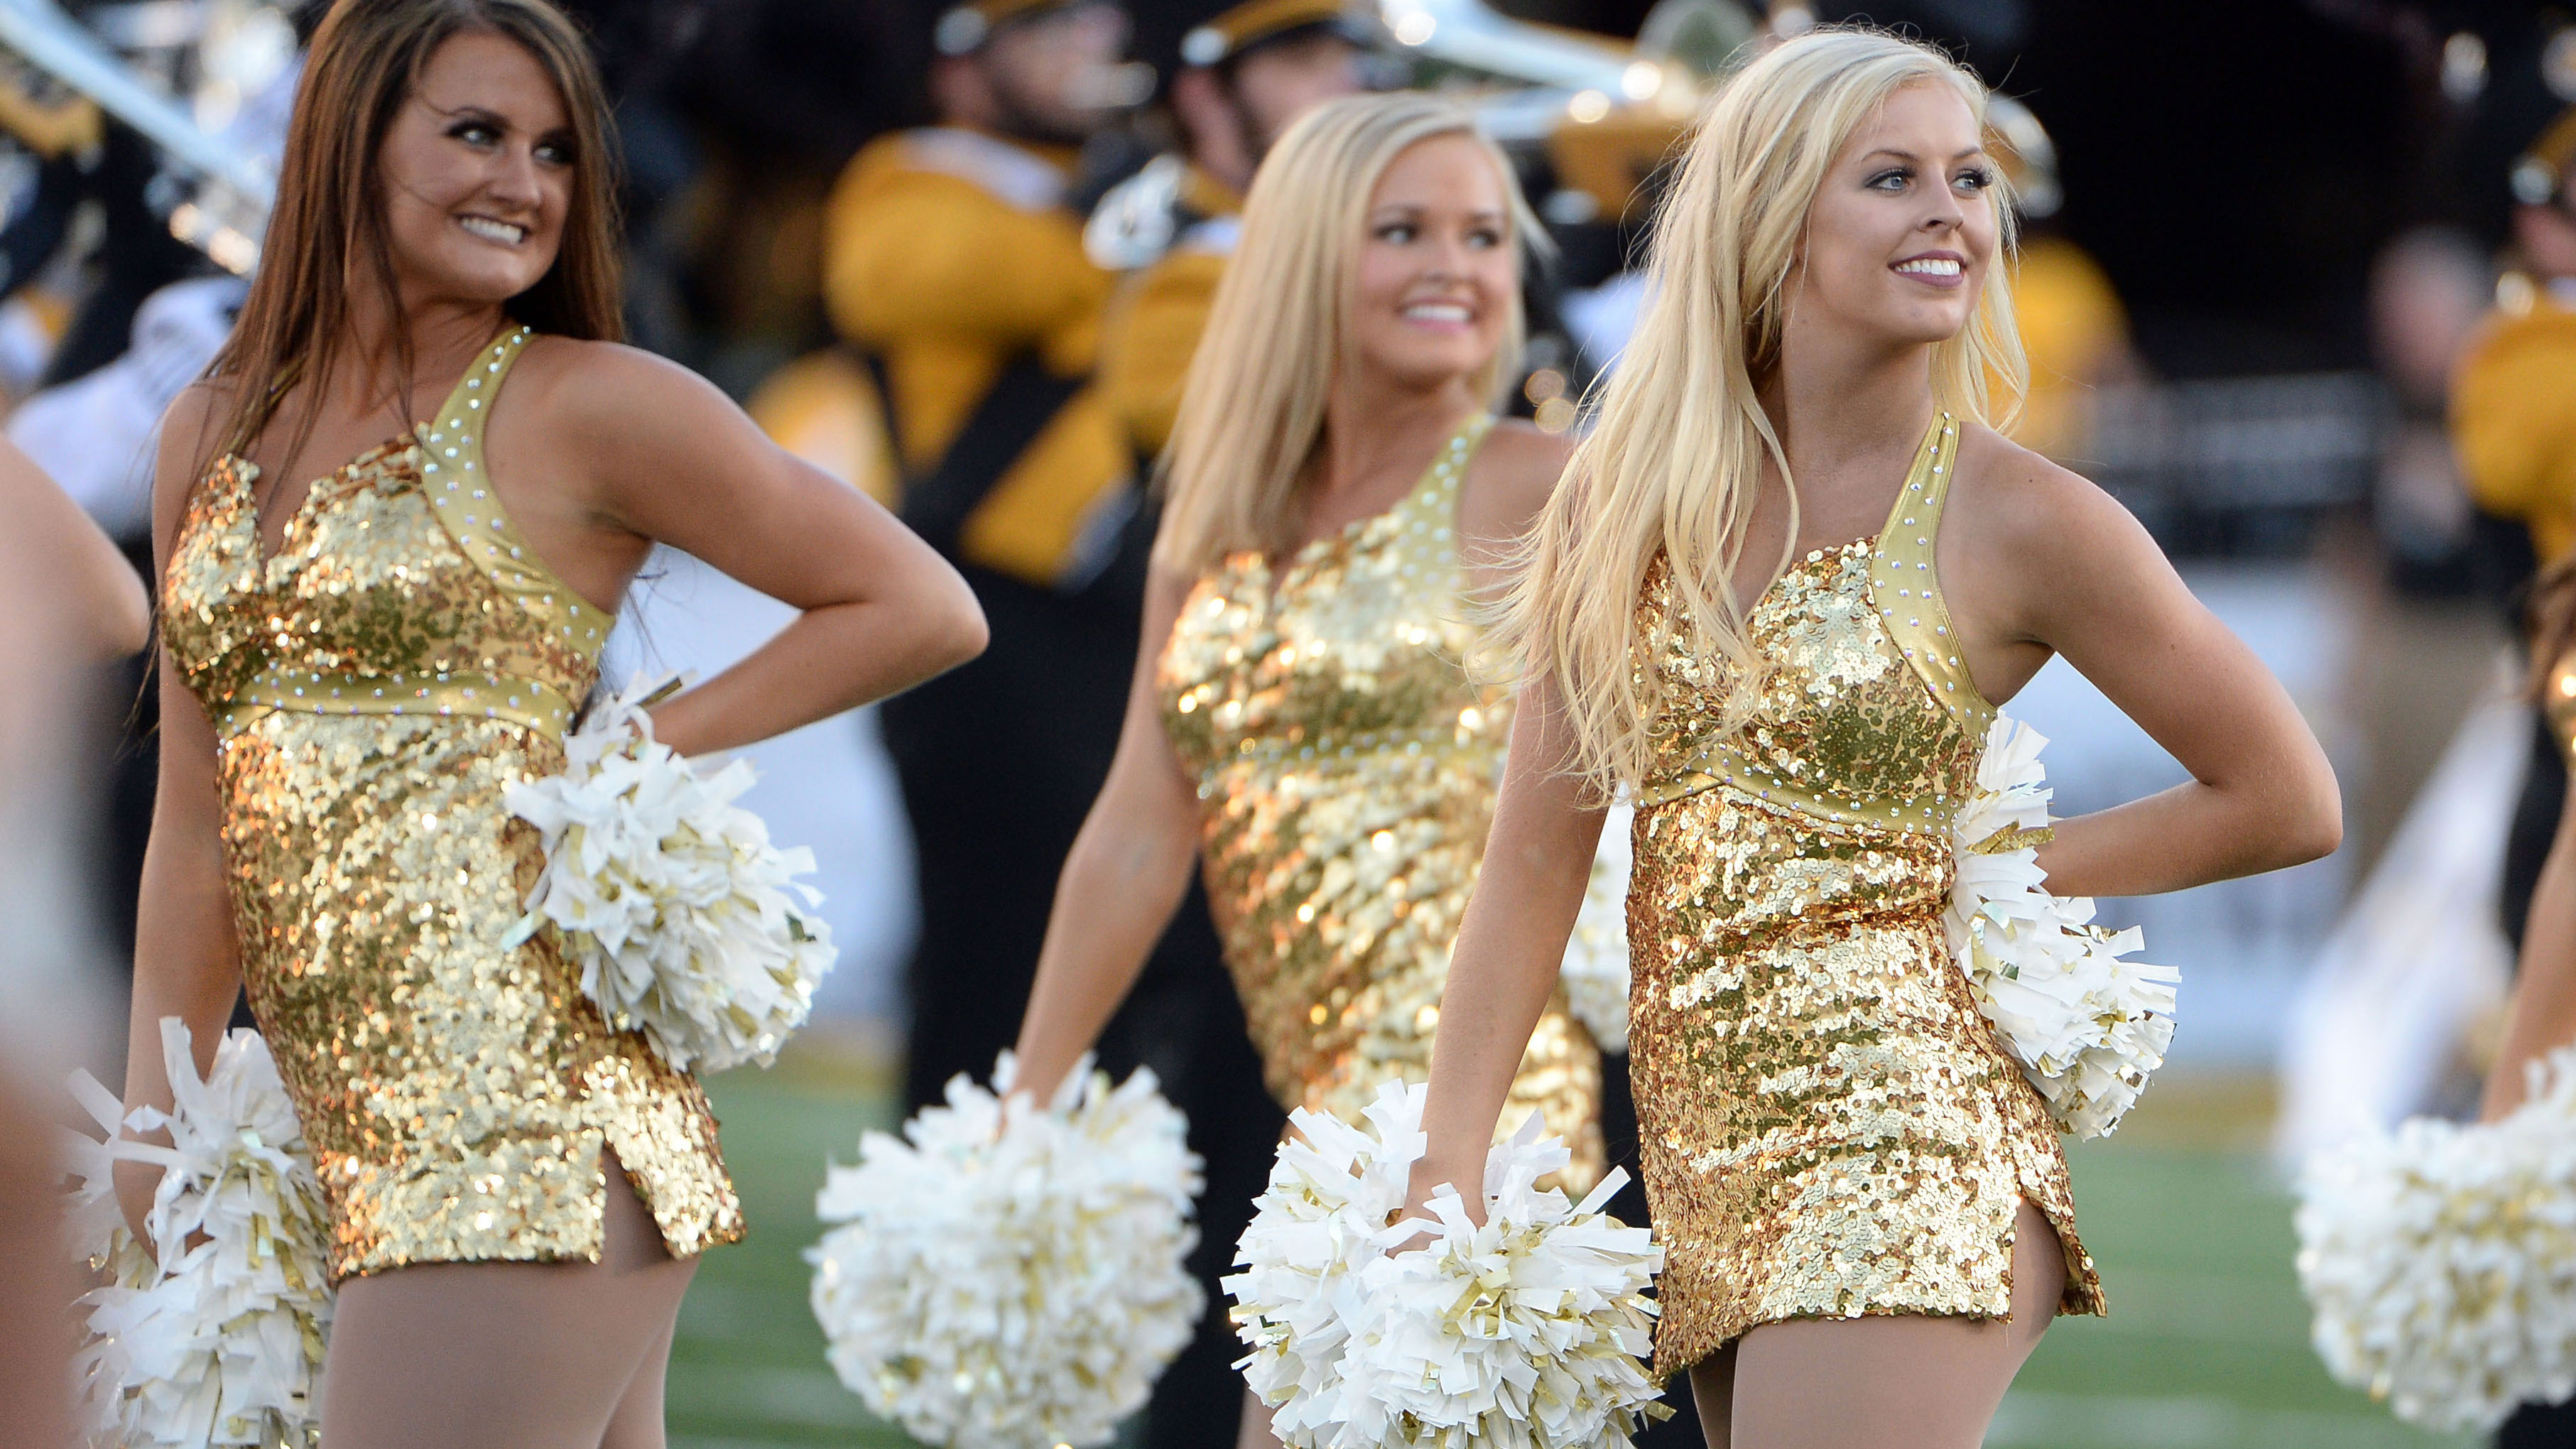 PI-CFB-cheer16-Missouri-2-091716